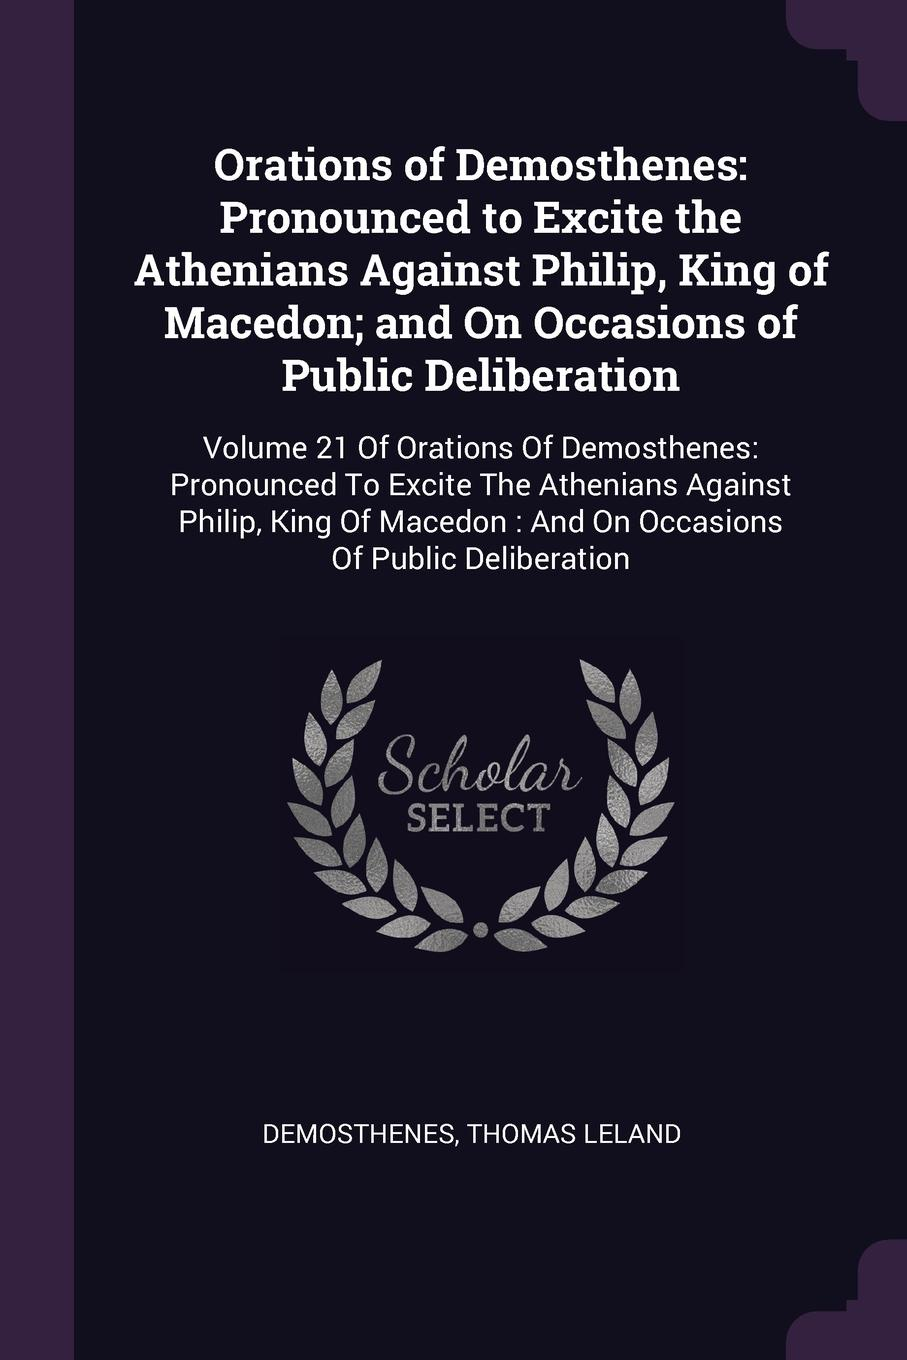 Orations of Demosthenes. Pronounced to Excite the Athenians Against Philip, King of Macedon; and On Occasions of Public Deliberation: Volume 21 Of Orations Of Demosthenes: Pronounced To Excite The Athenians Against Philip, King Of Macedon : And On...